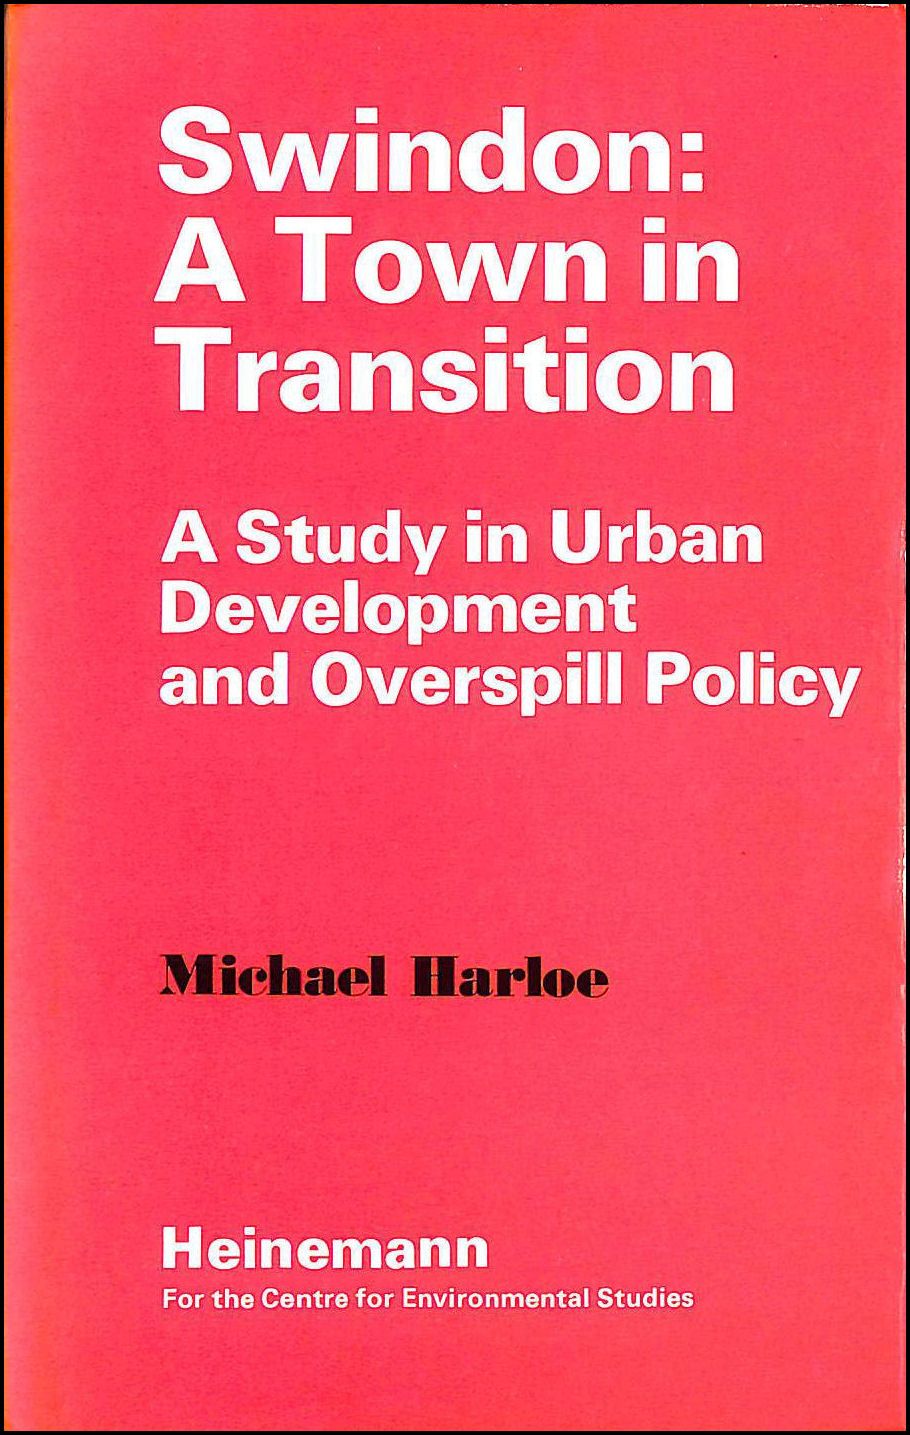 Image for Swindon: A Town in Transition - A Study in Urban Development and Overspill Policy (Series / Centre for Environmental Studies)